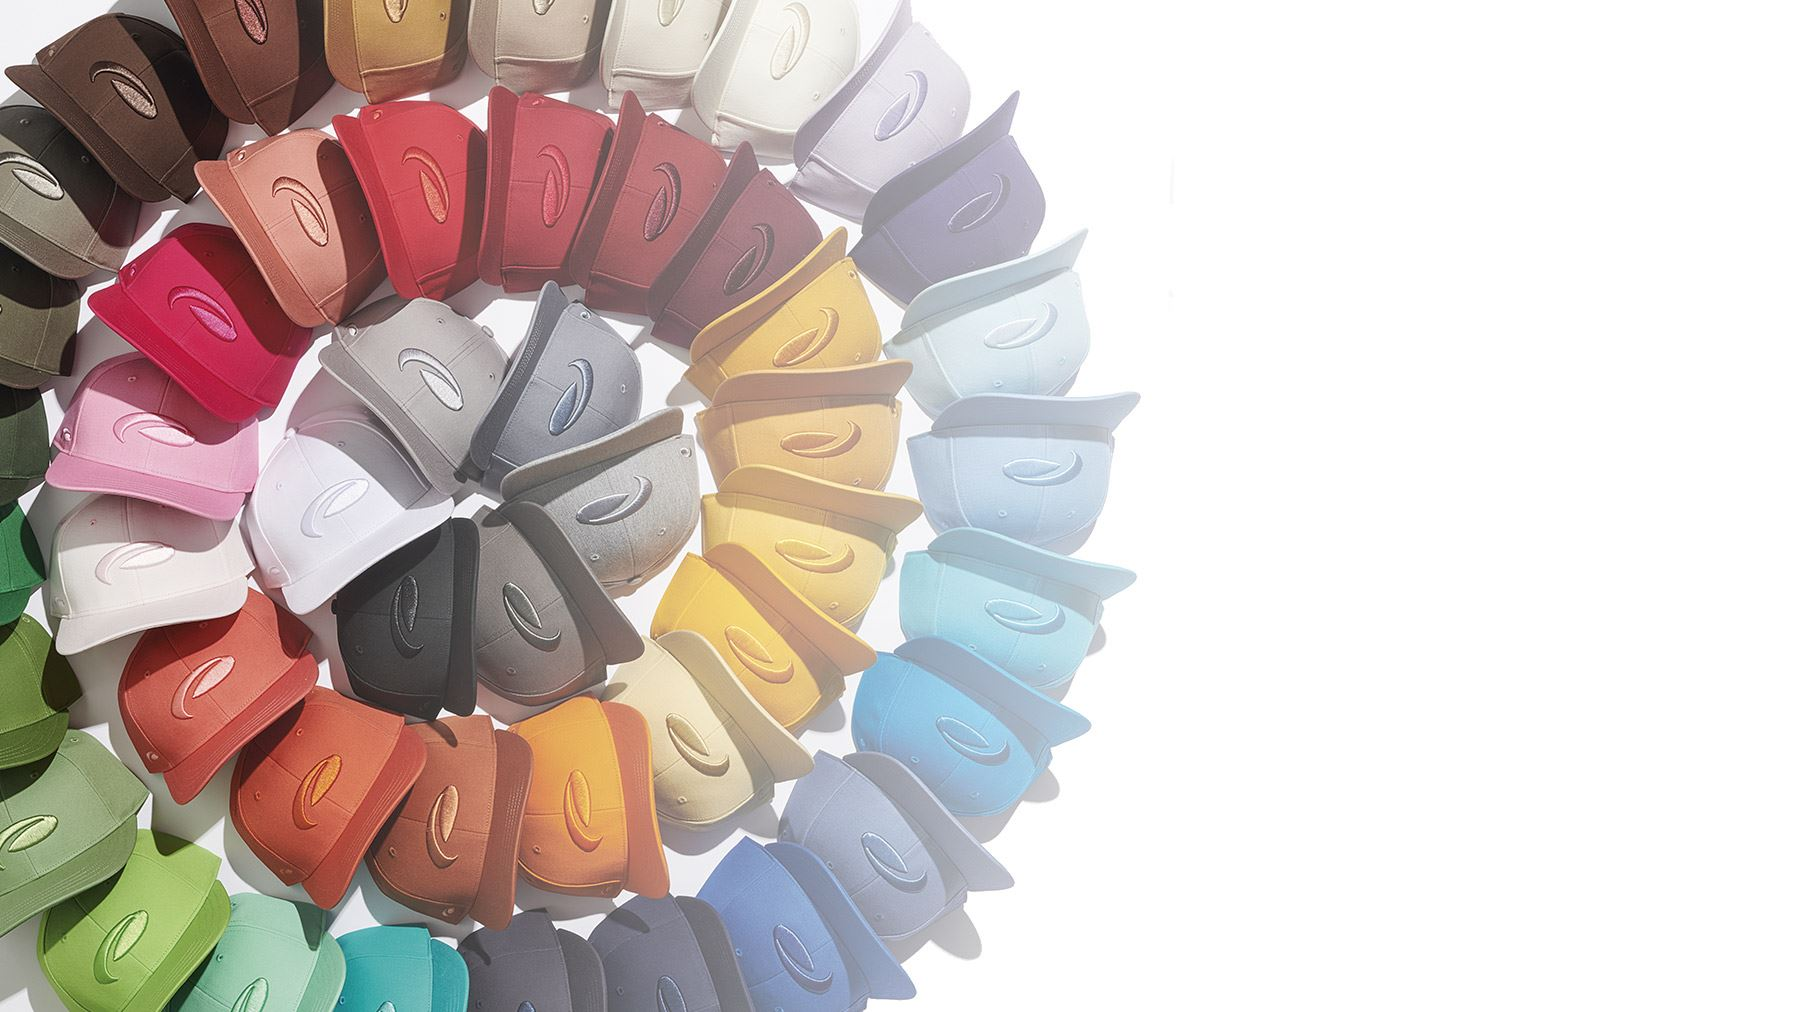 Color wheel of cotton twill flat brim hats